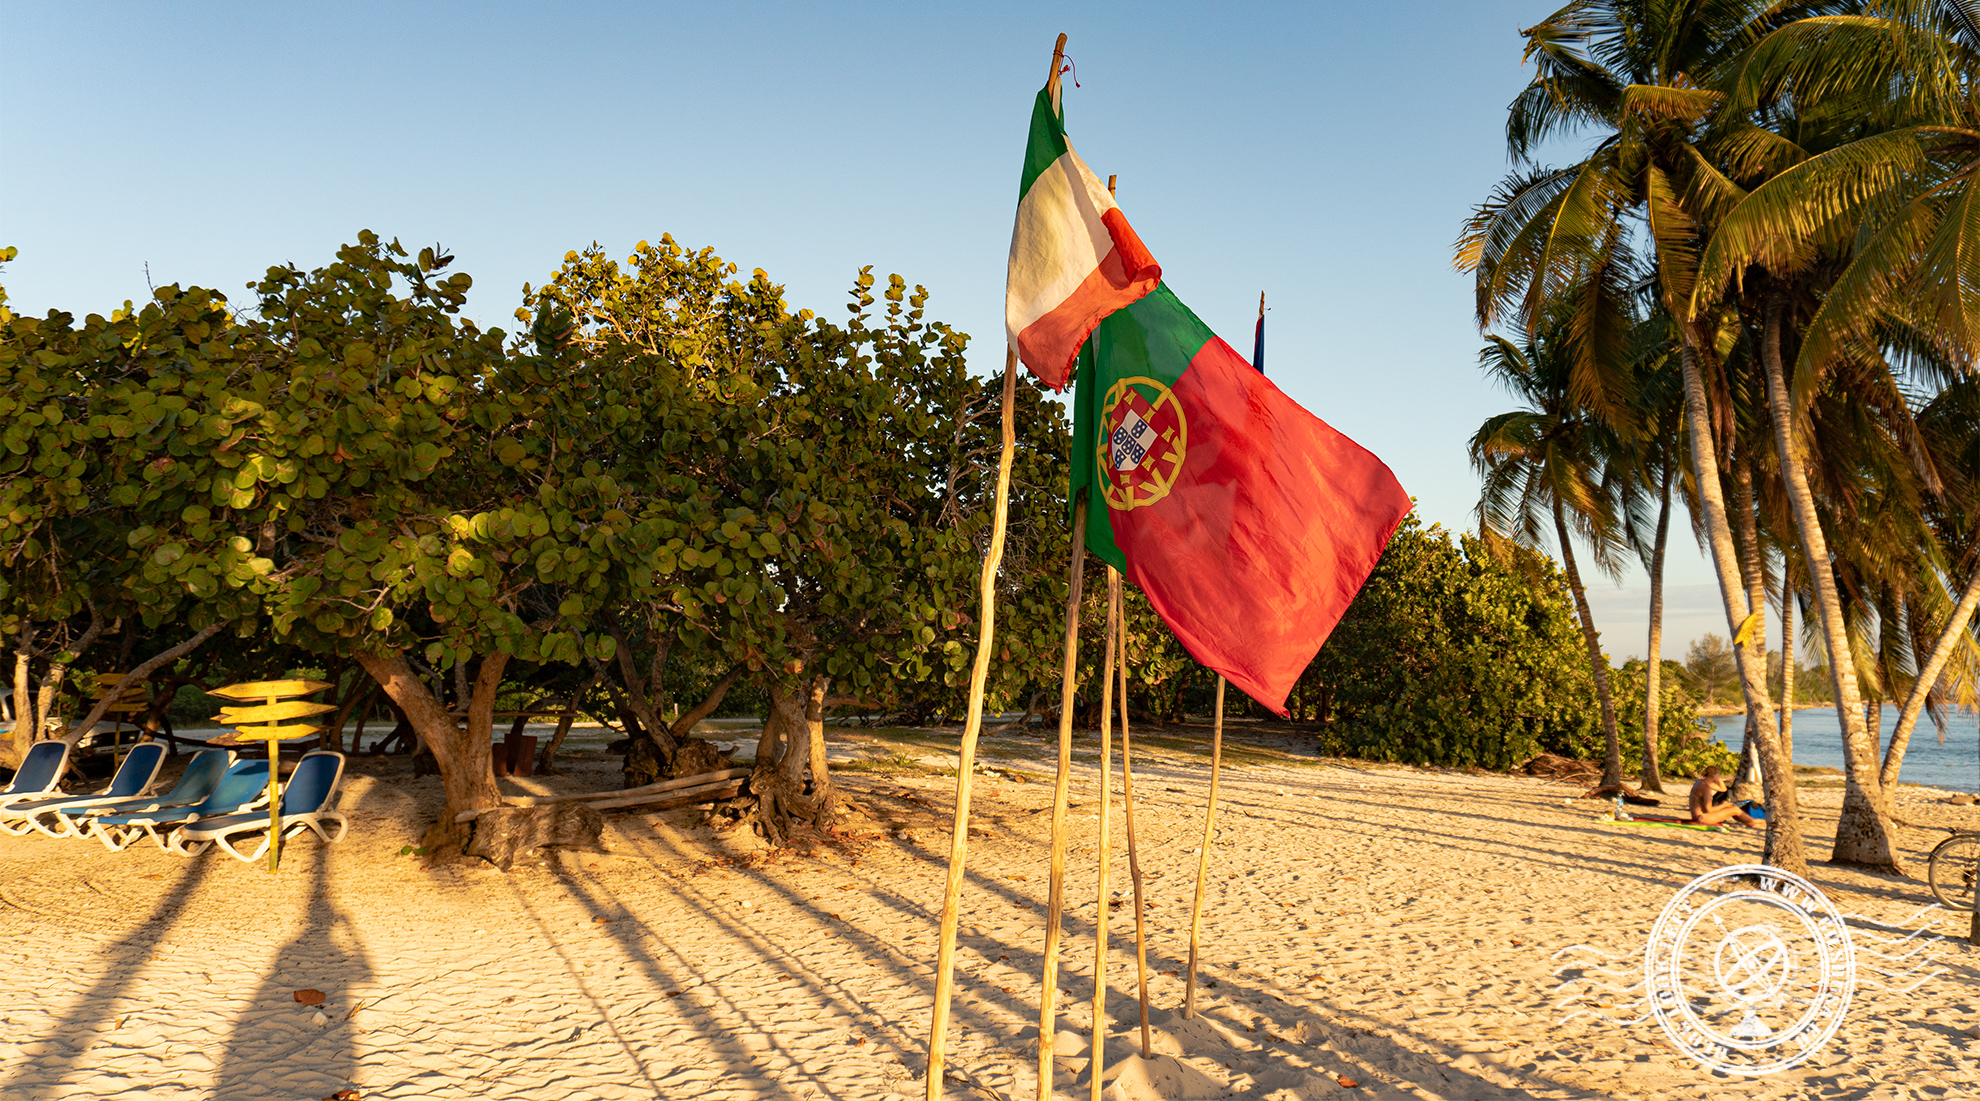 Portuguese and Irish flags at Playa Girón